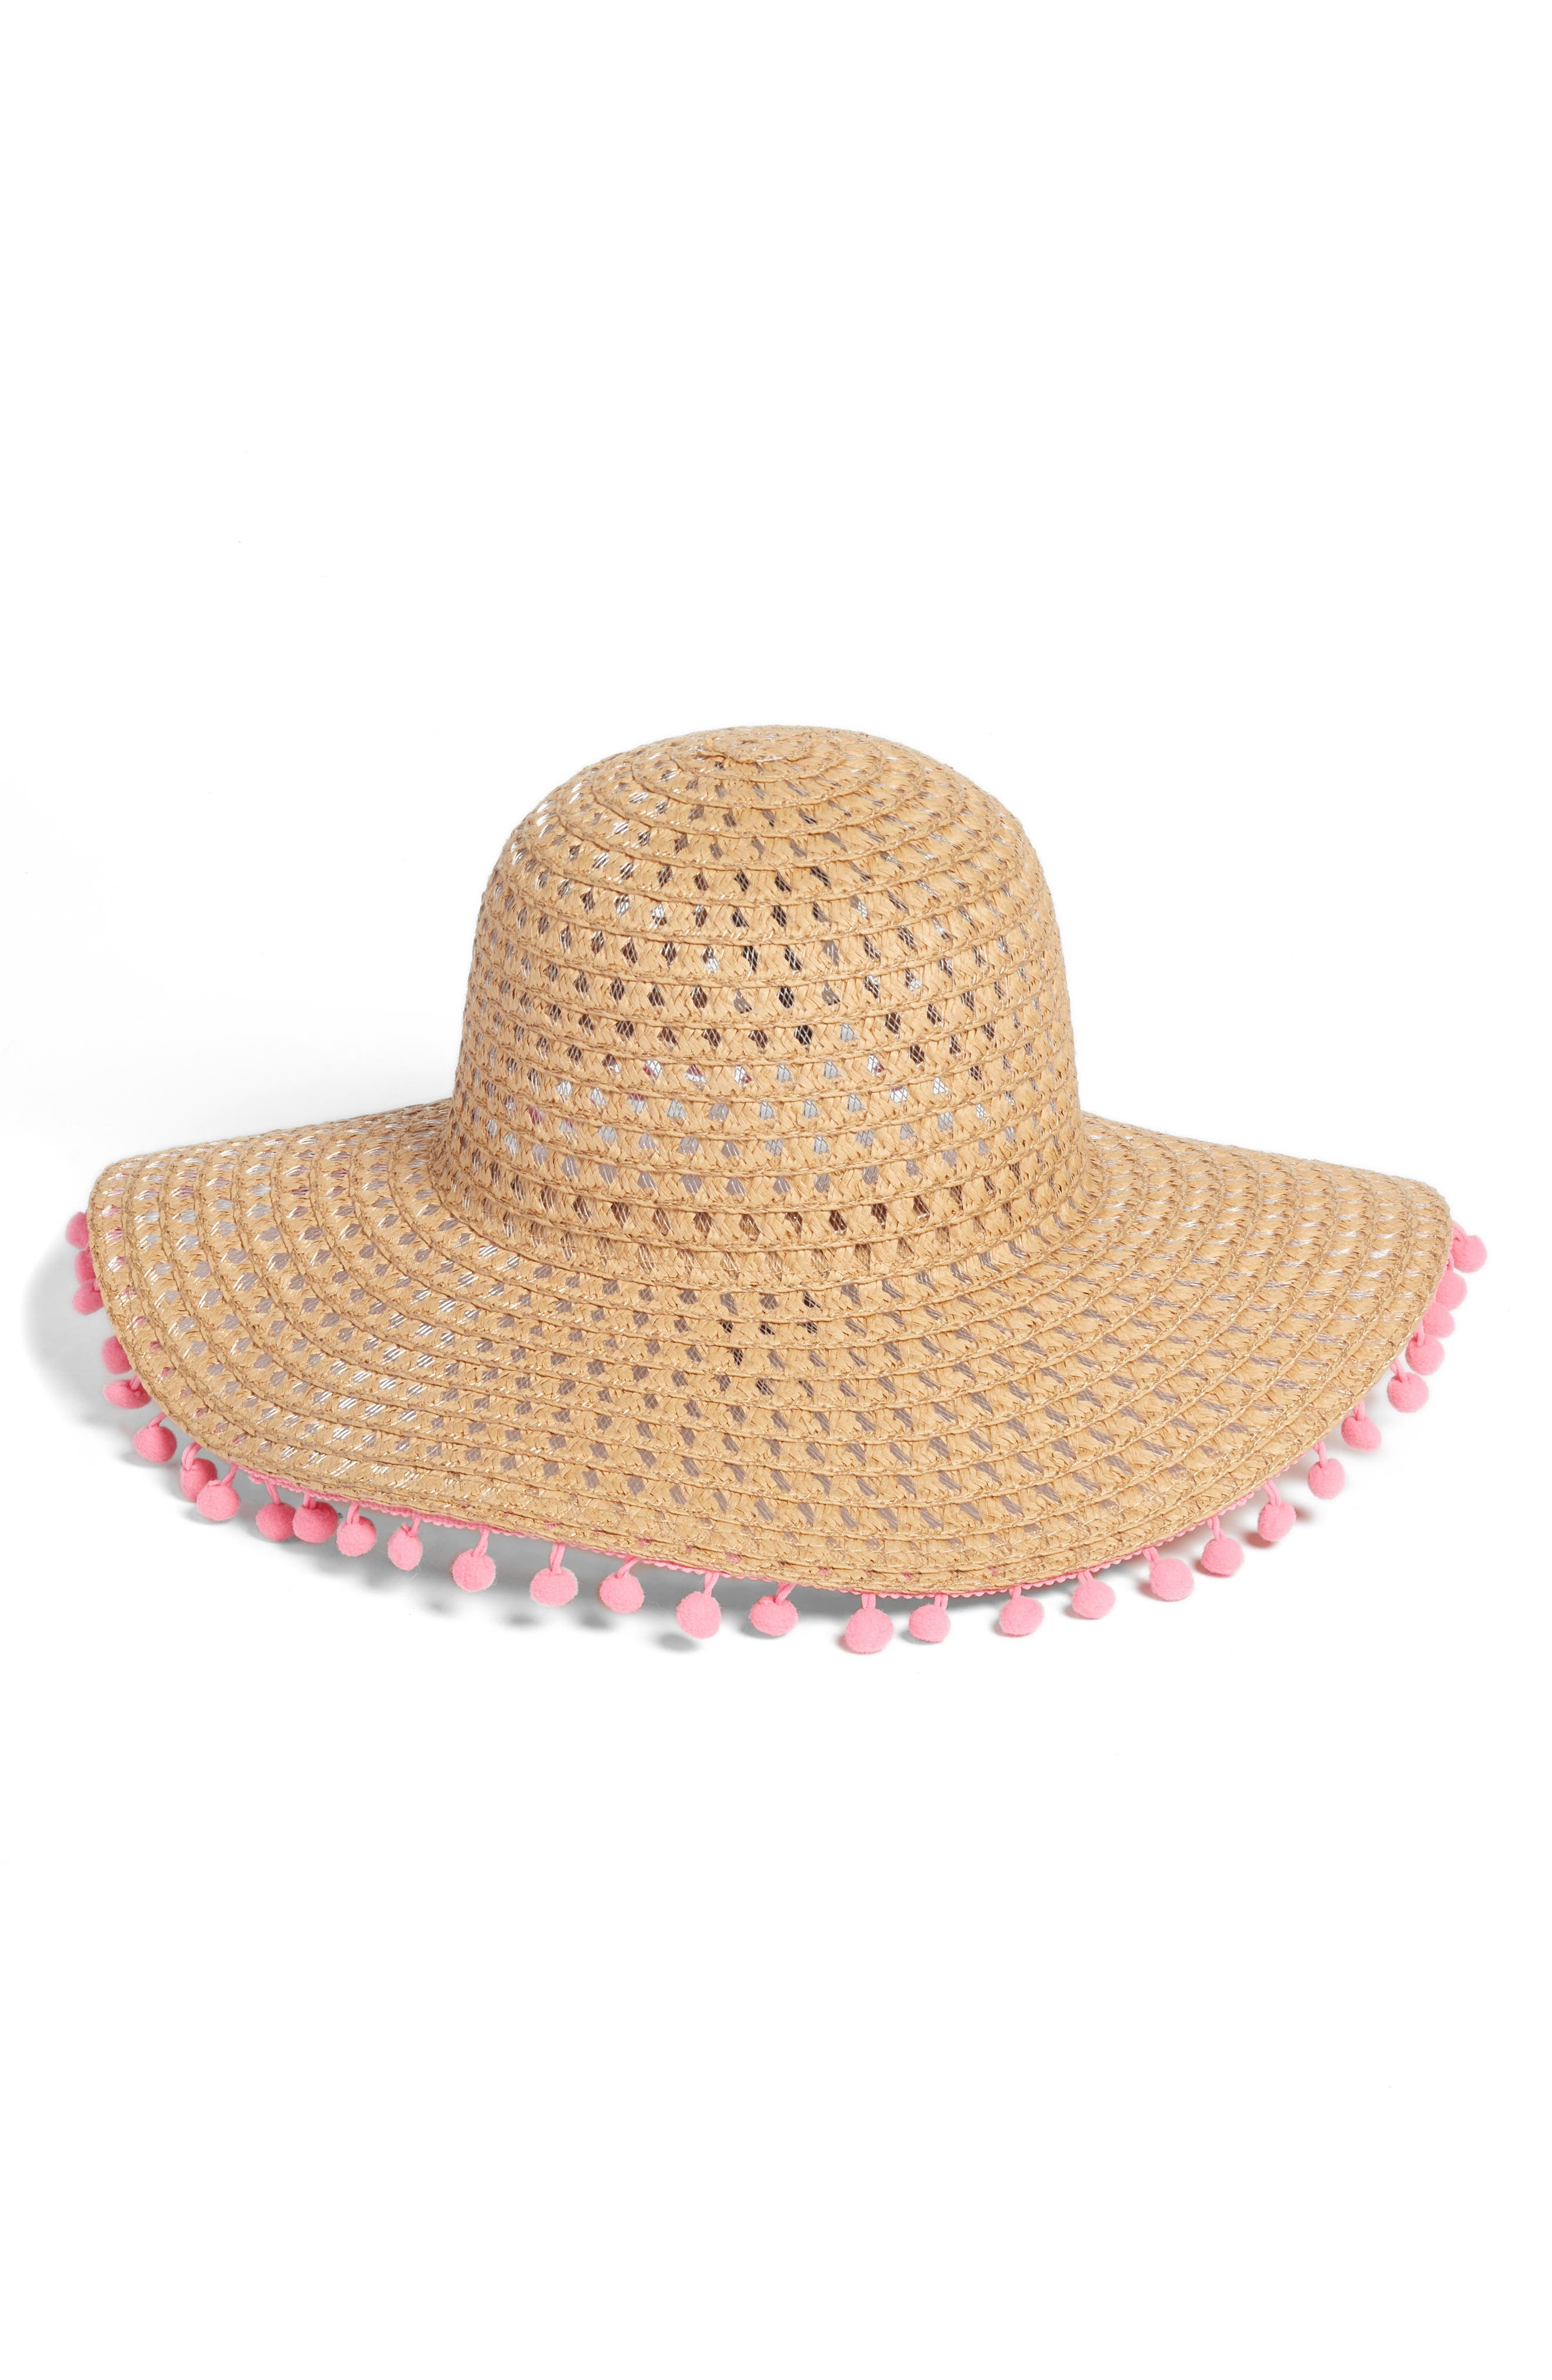 Pompom Trim Floppy Straw Hat,                             Main thumbnail 1, color,                             Natural/ Pink